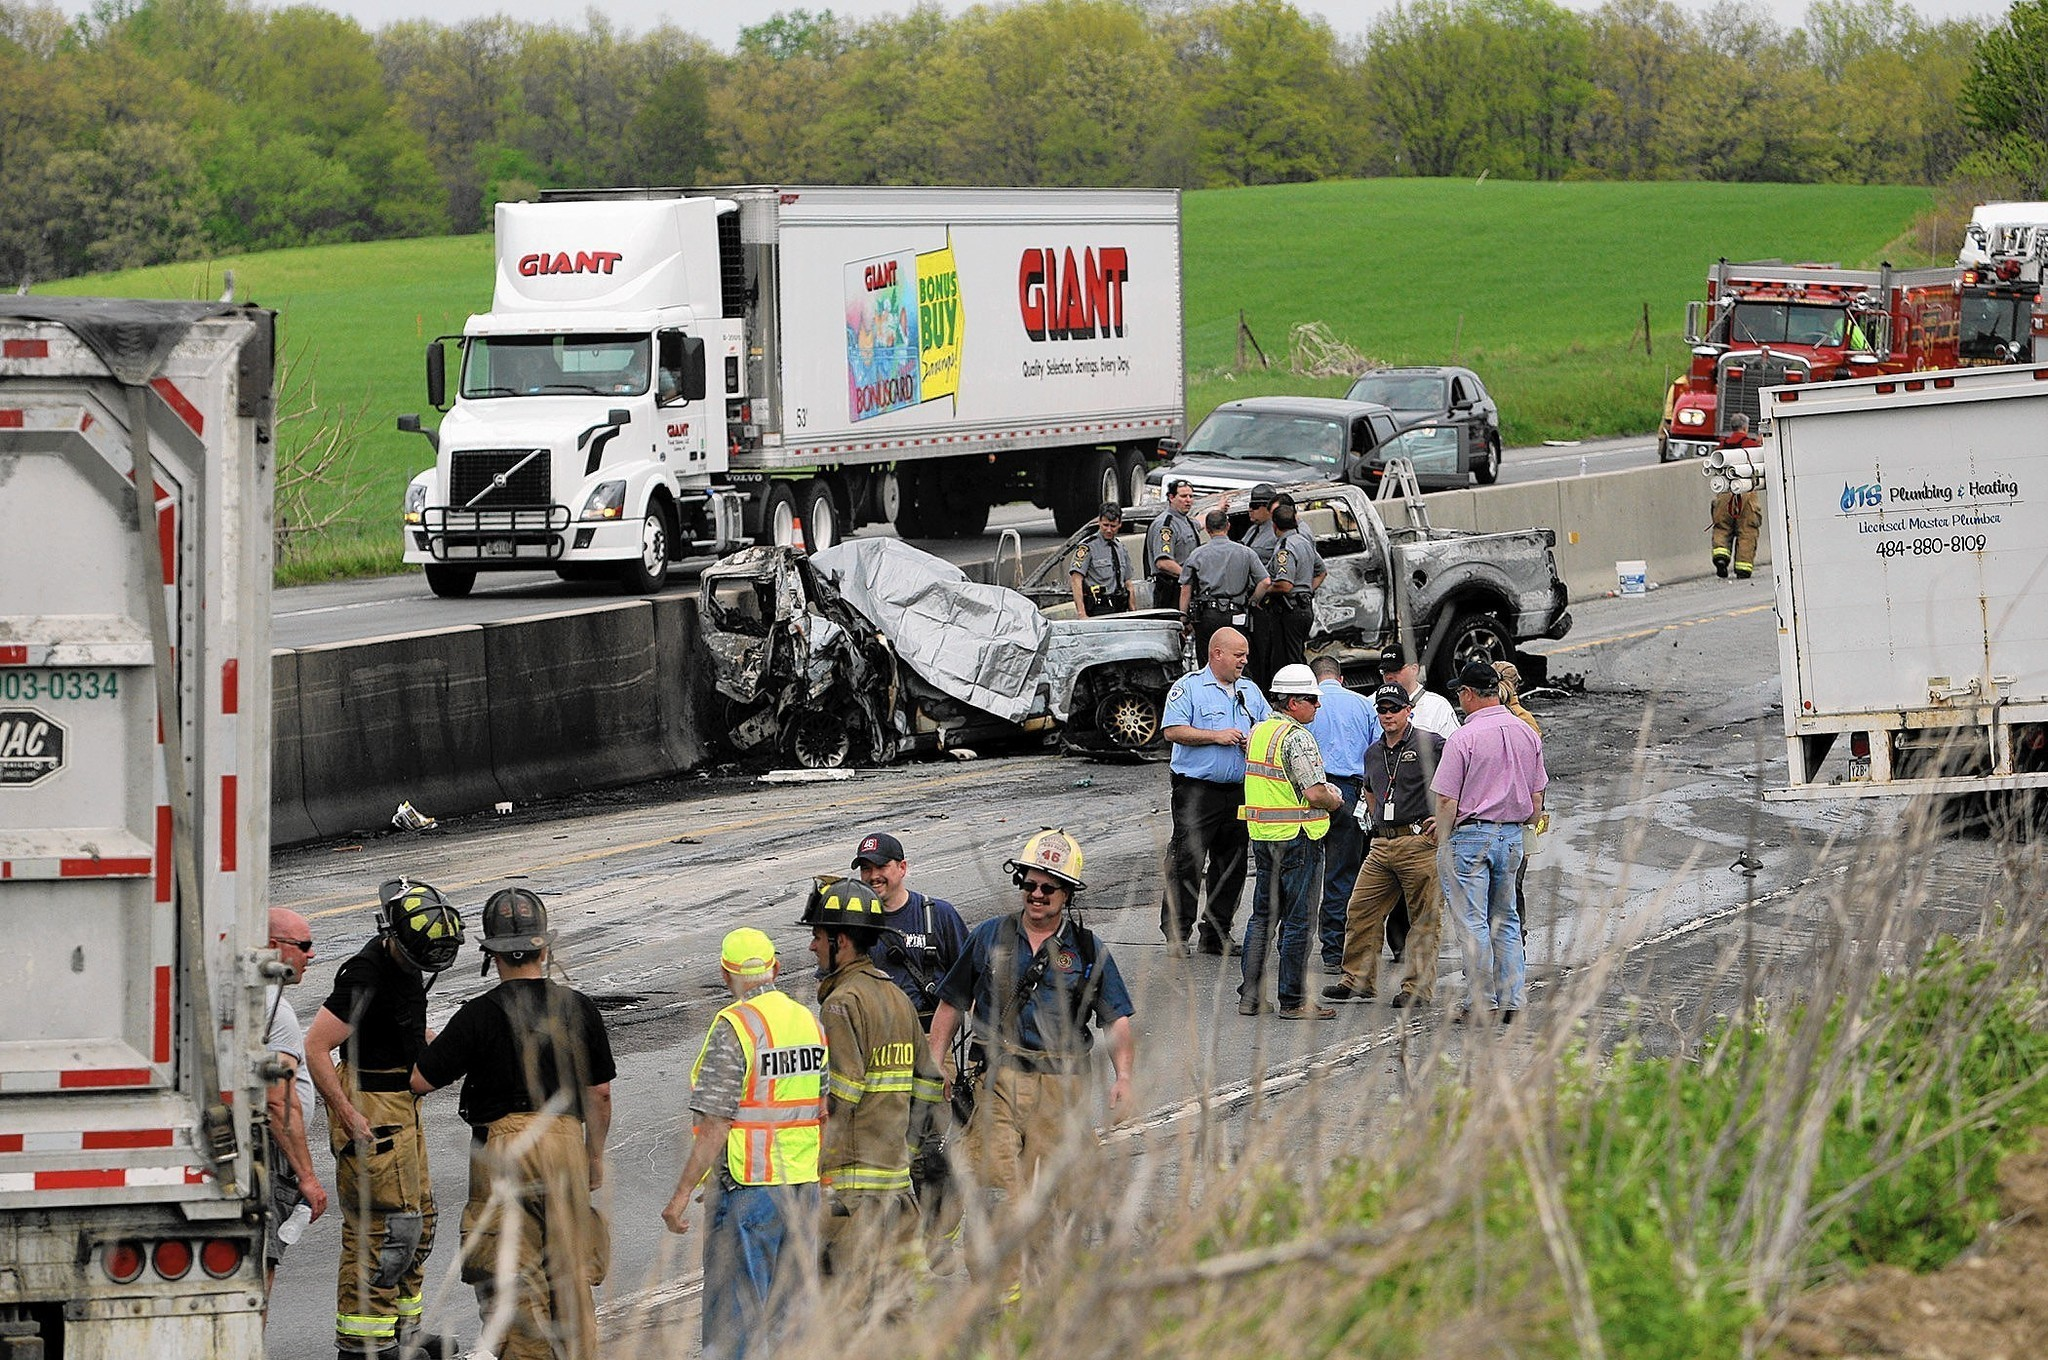 police: nj trucker was tired, driving too fast when he caused deadly